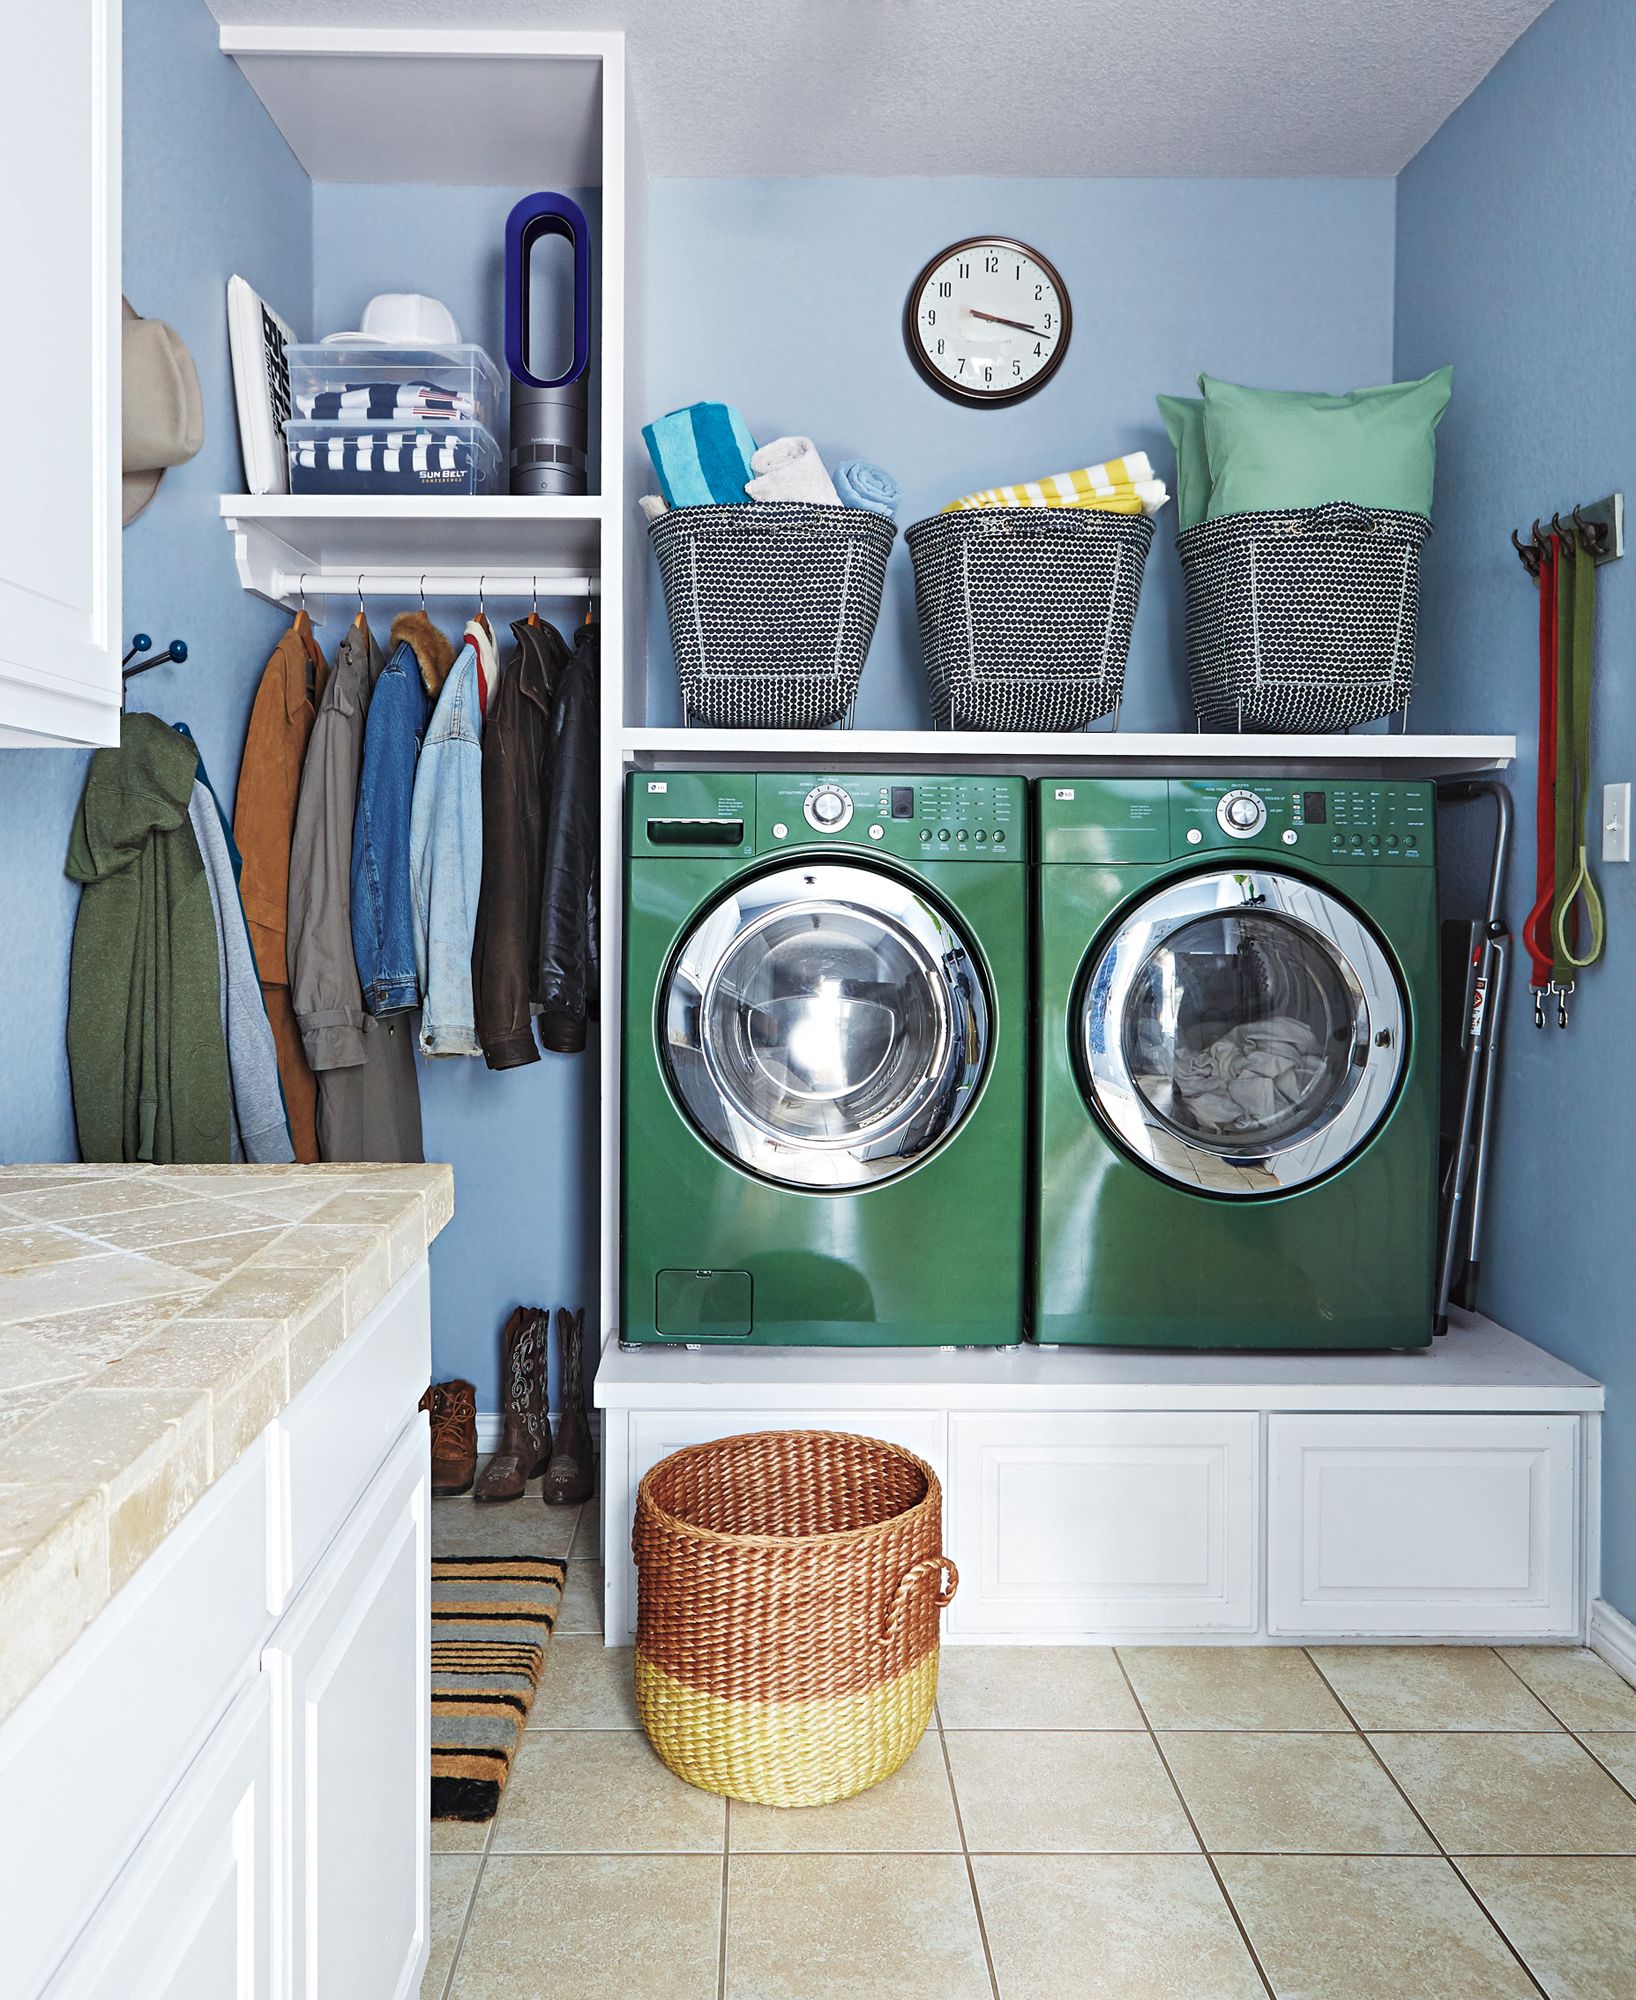 Laundry Room: After